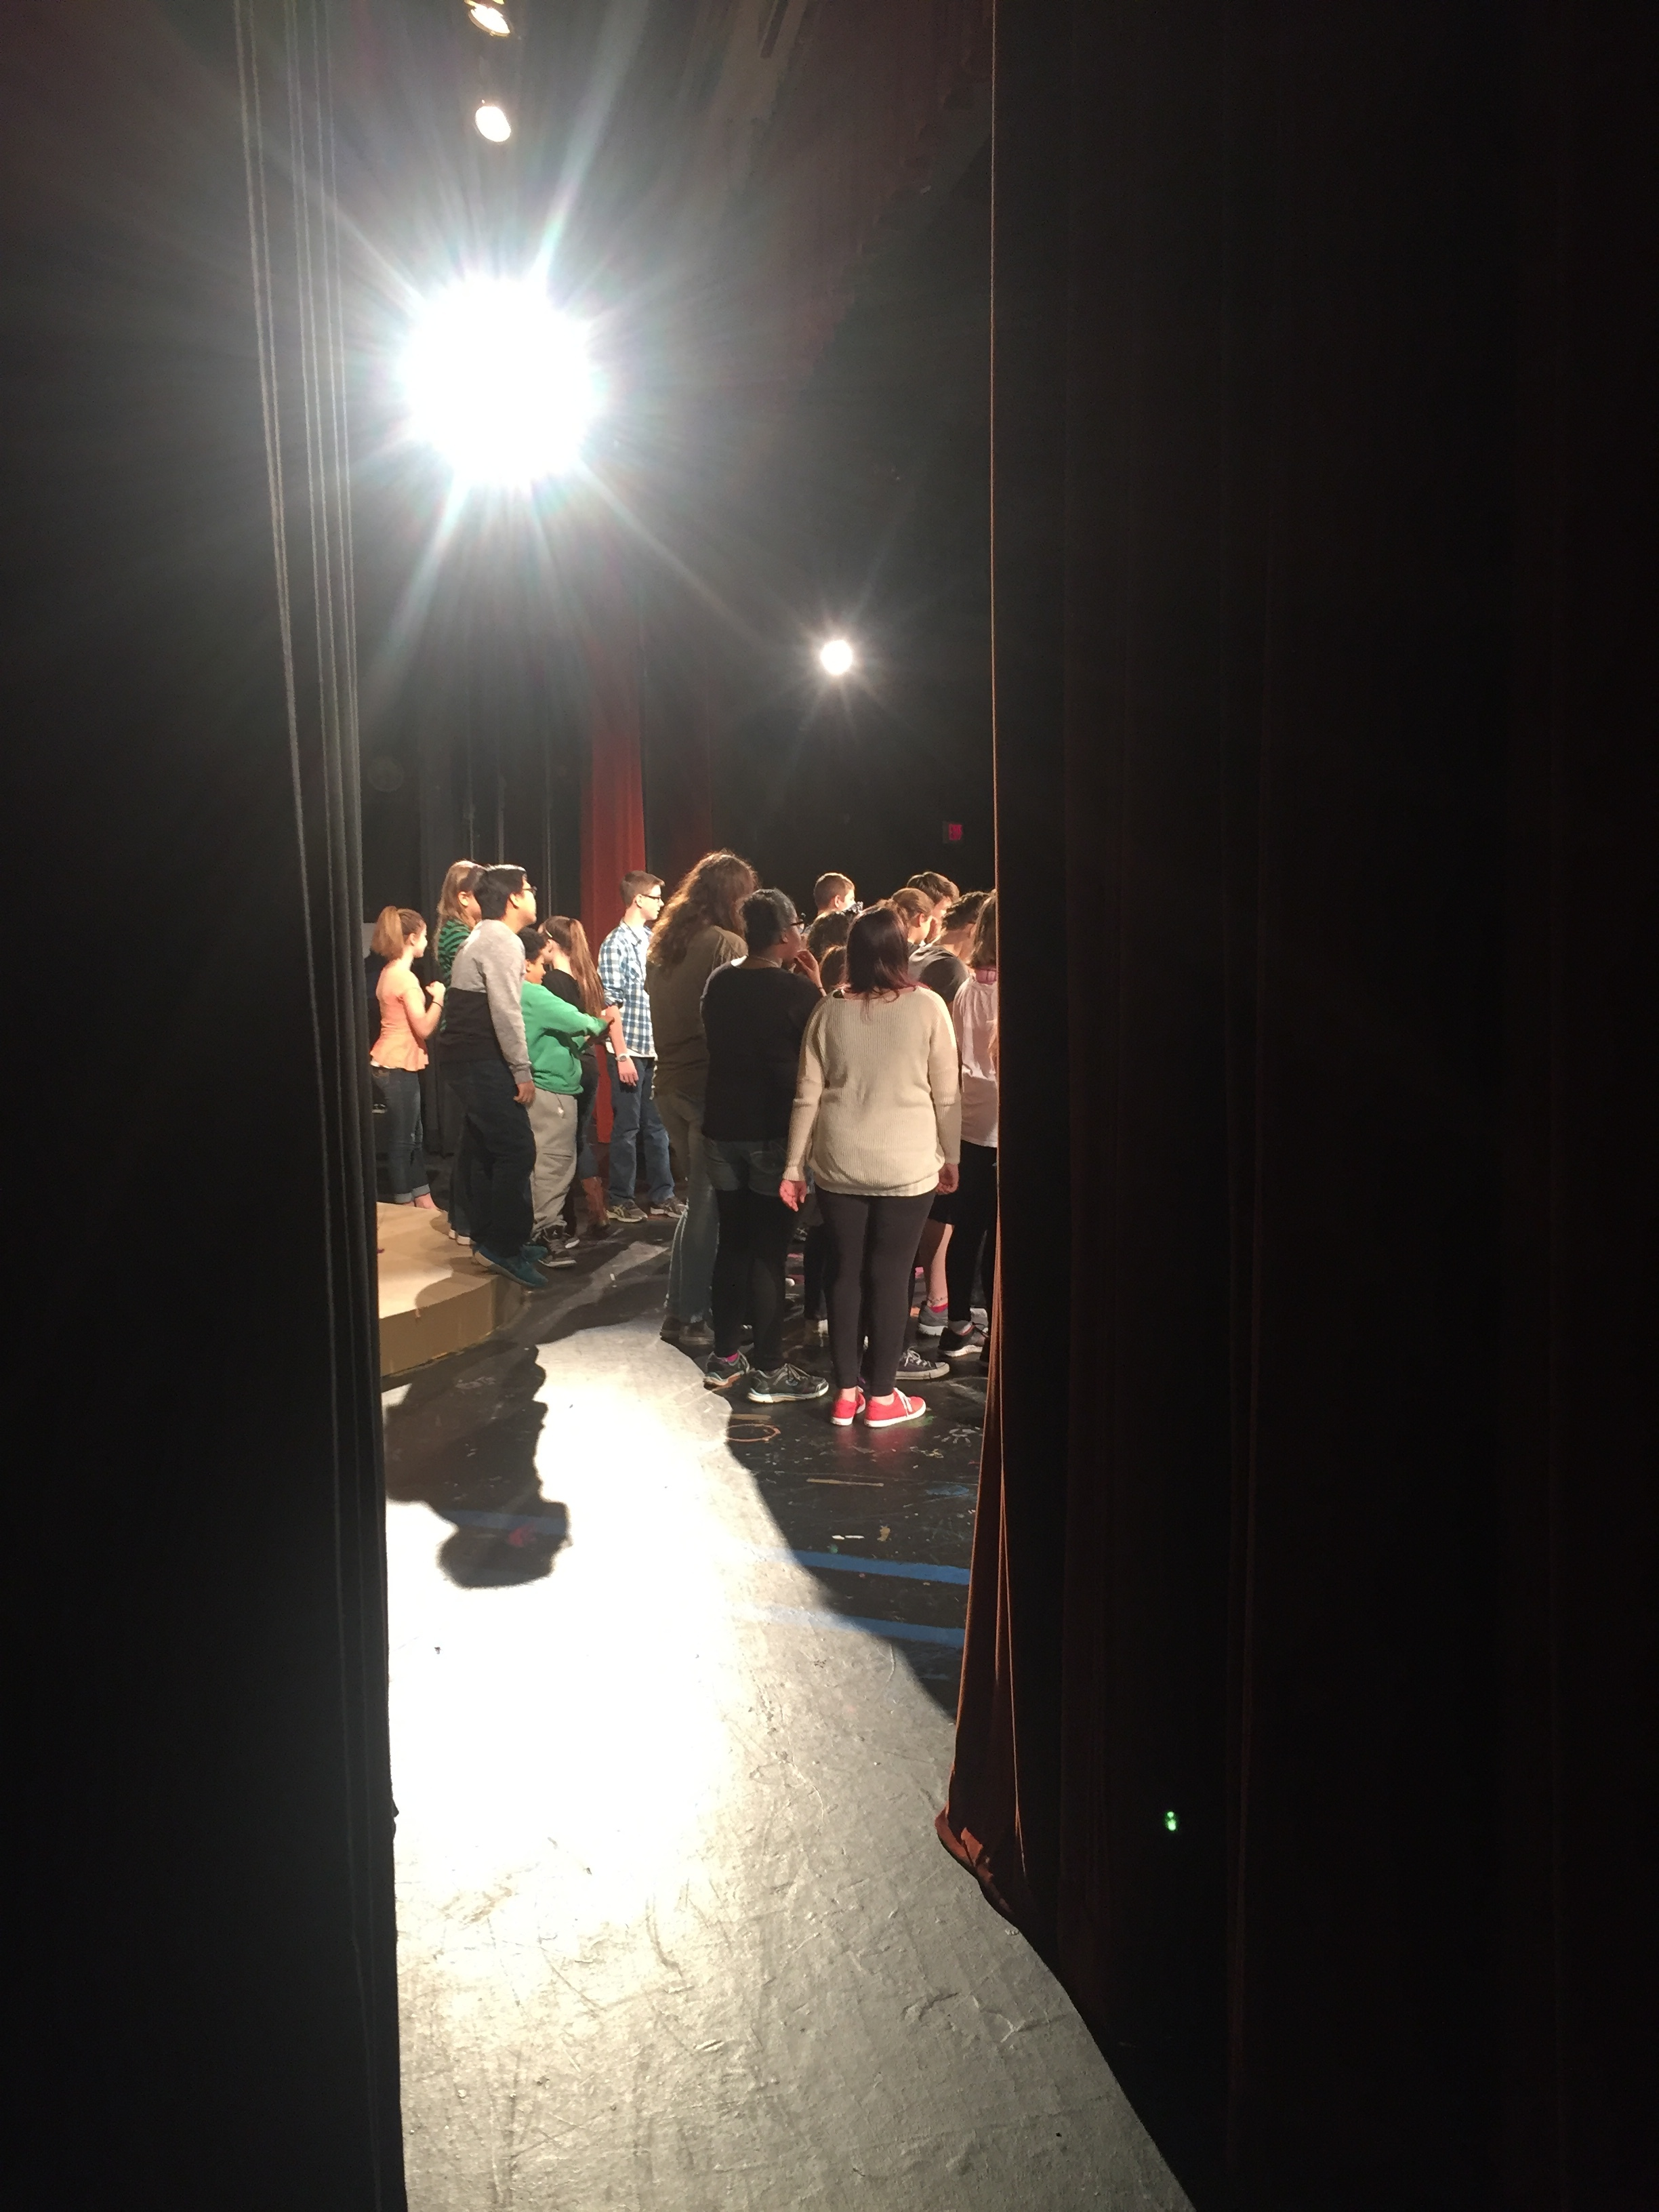 The CAST Receiving directions, as seen from backstage. Photo credit T. Krueger